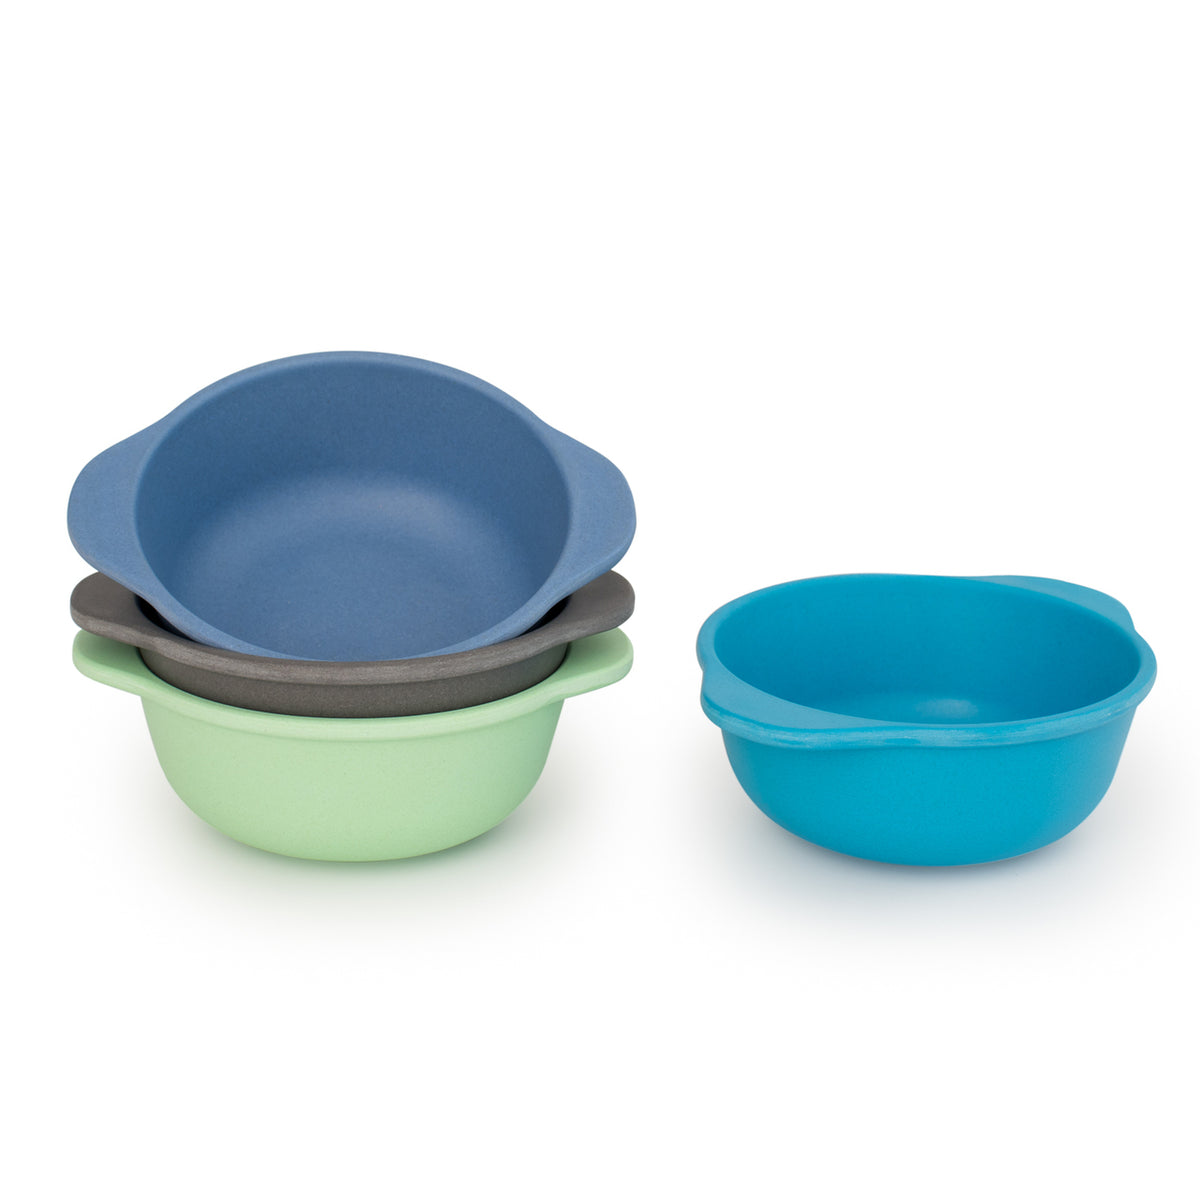 Bobo & Boo Snack Bowl Set (set of 4)